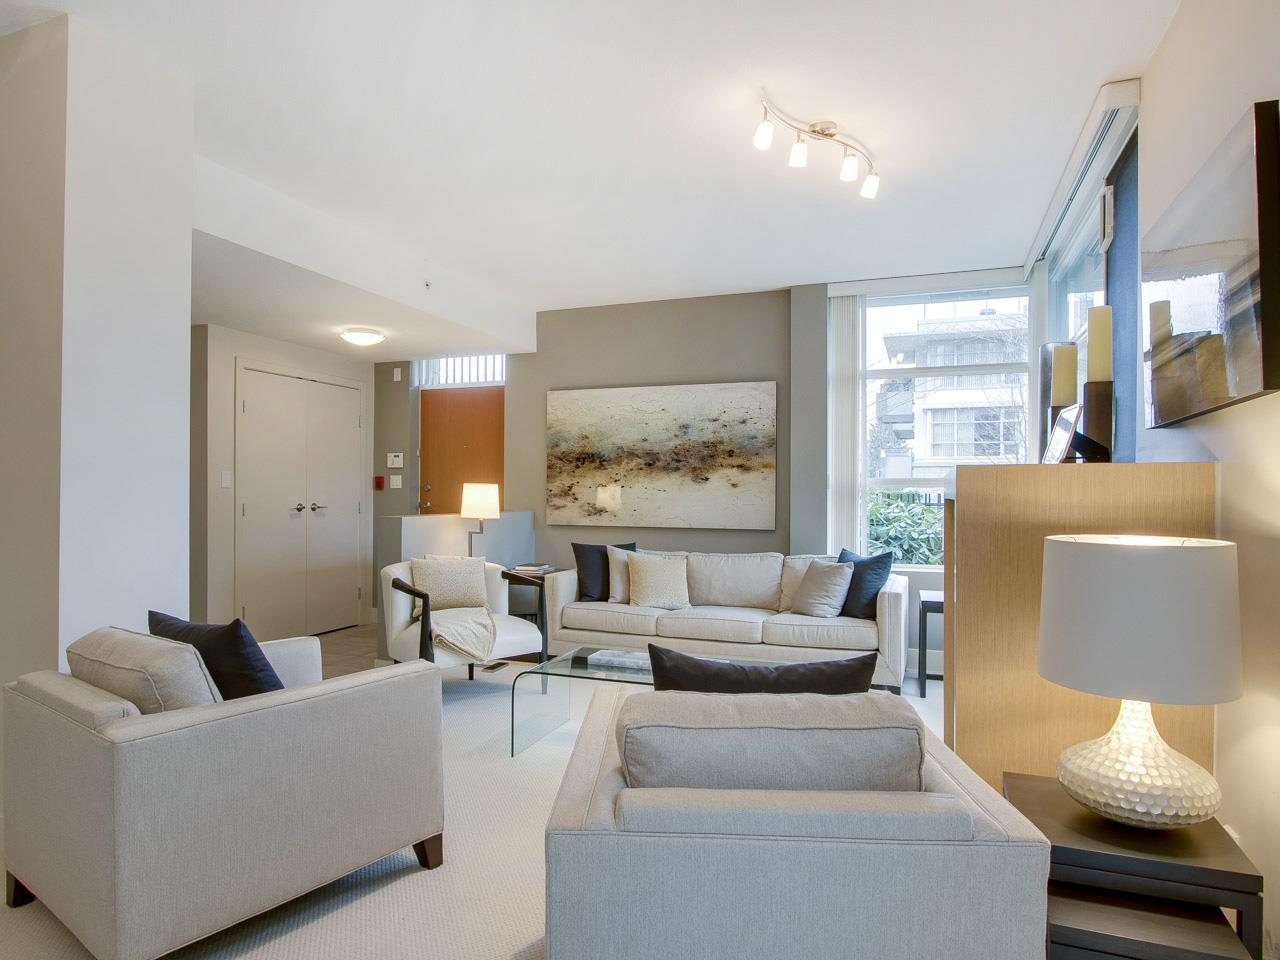 Photo 4: 113 6018 IONA DRIVE in Vancouver: University VW Townhouse for sale (Vancouver West)  : MLS® # R2146501